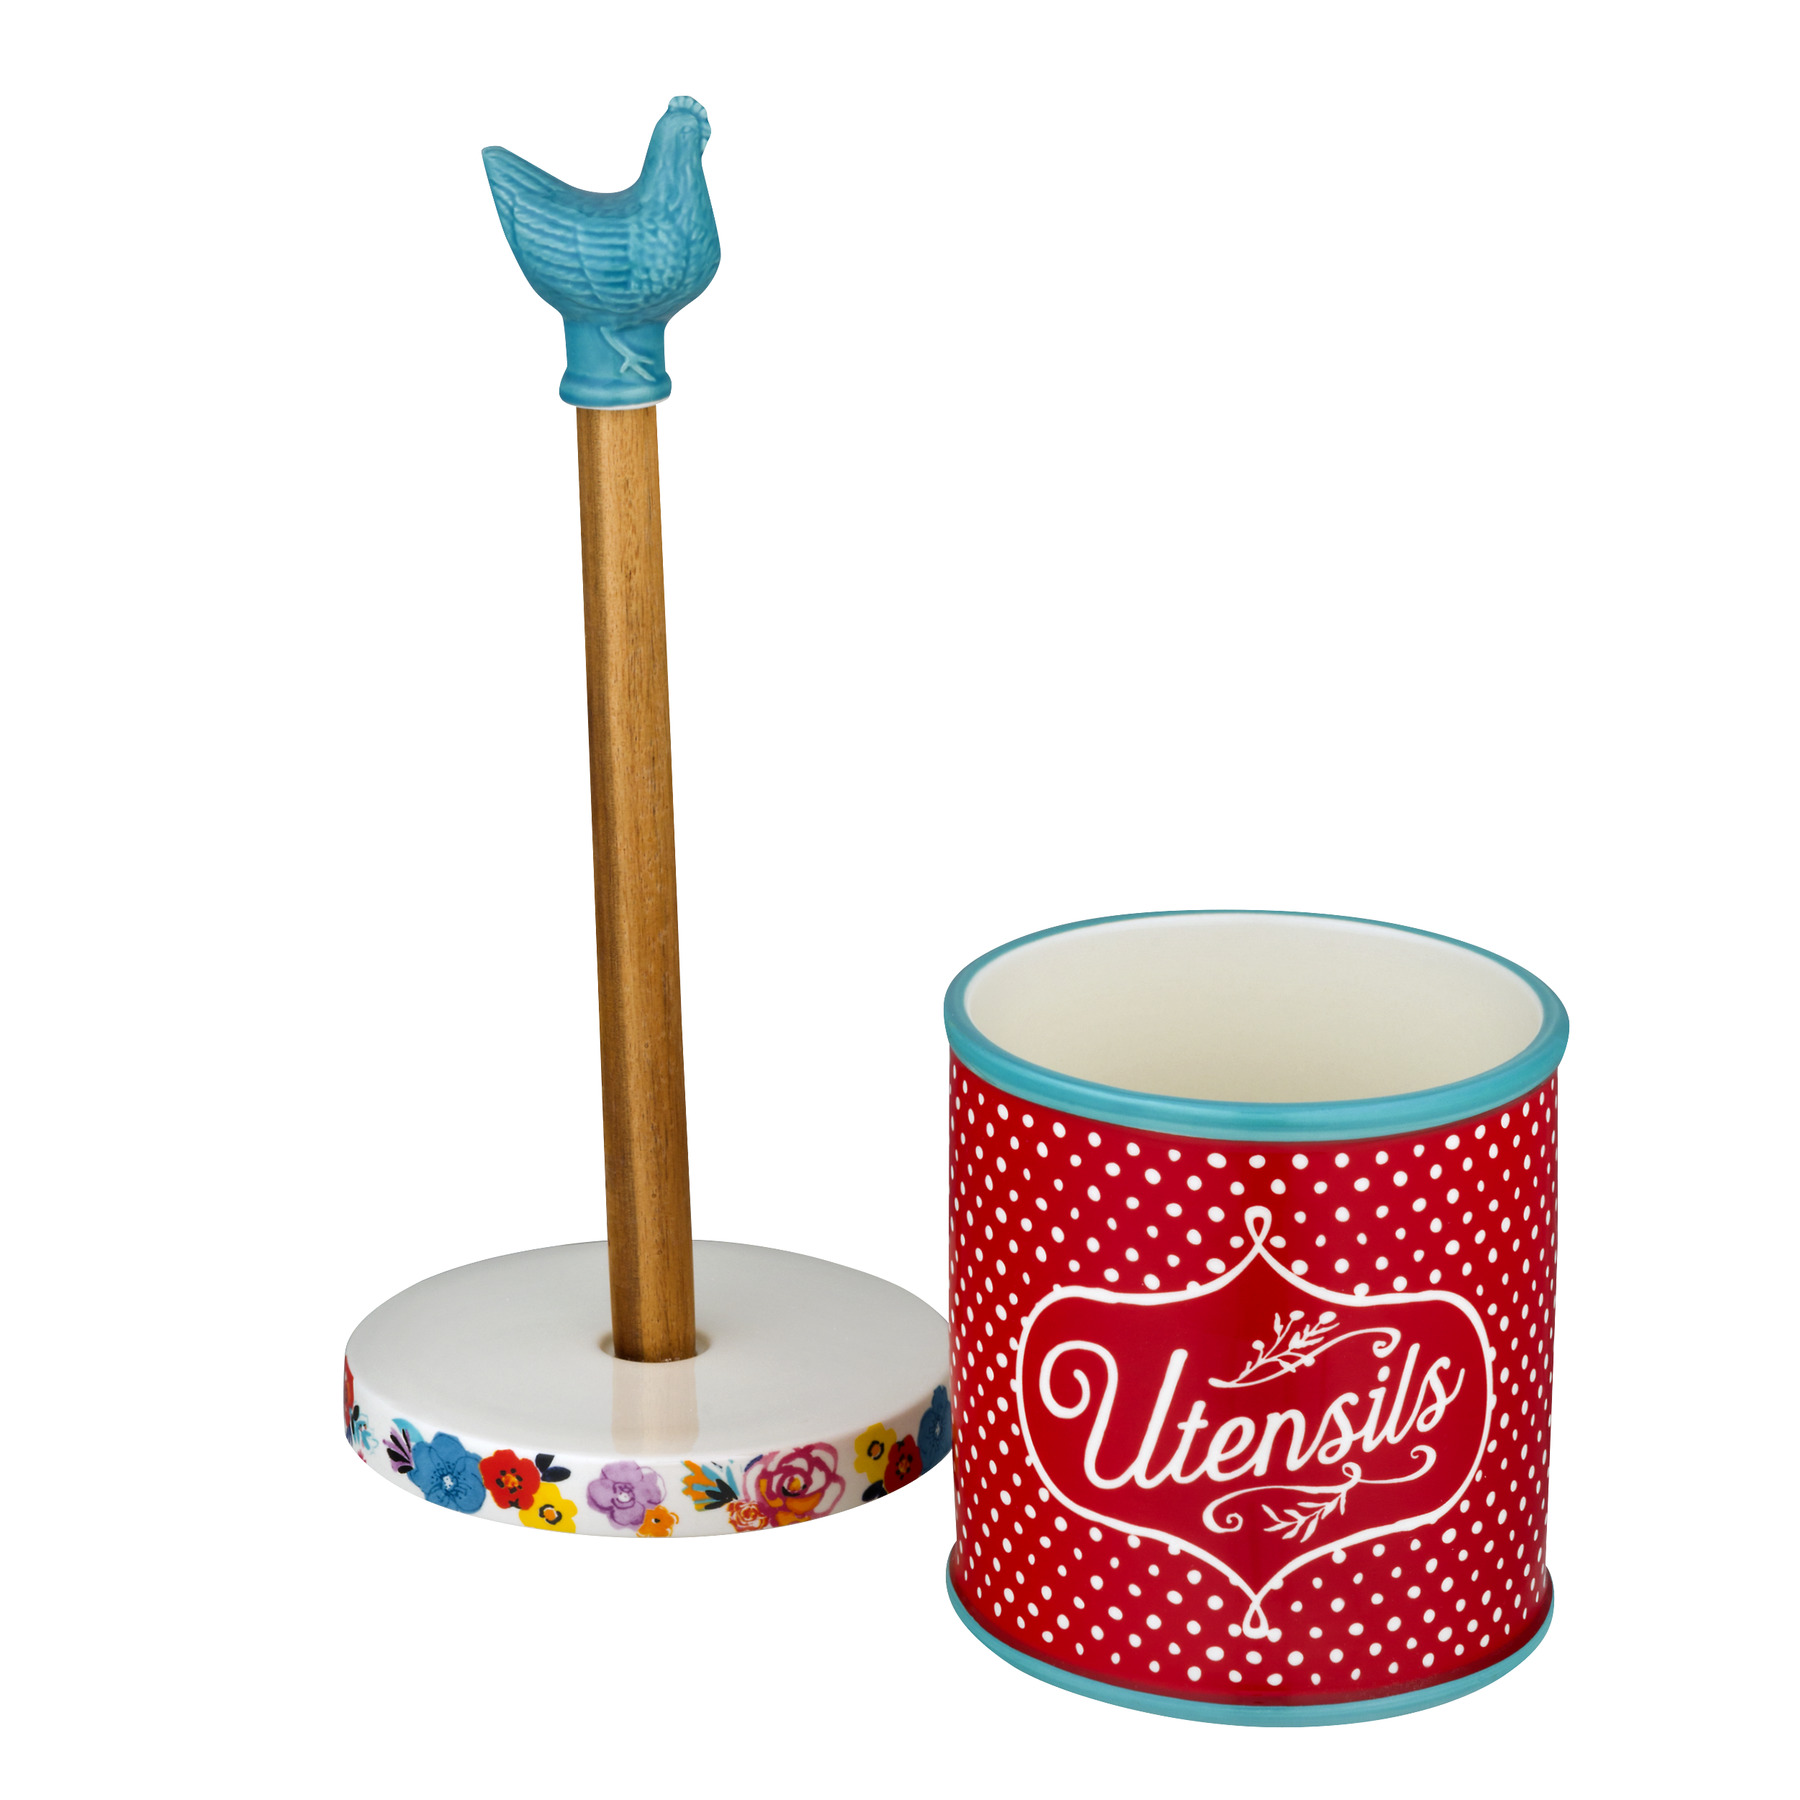 The Pioneer Woman Flea Market Turquoise Paper Towel Holder And Crock